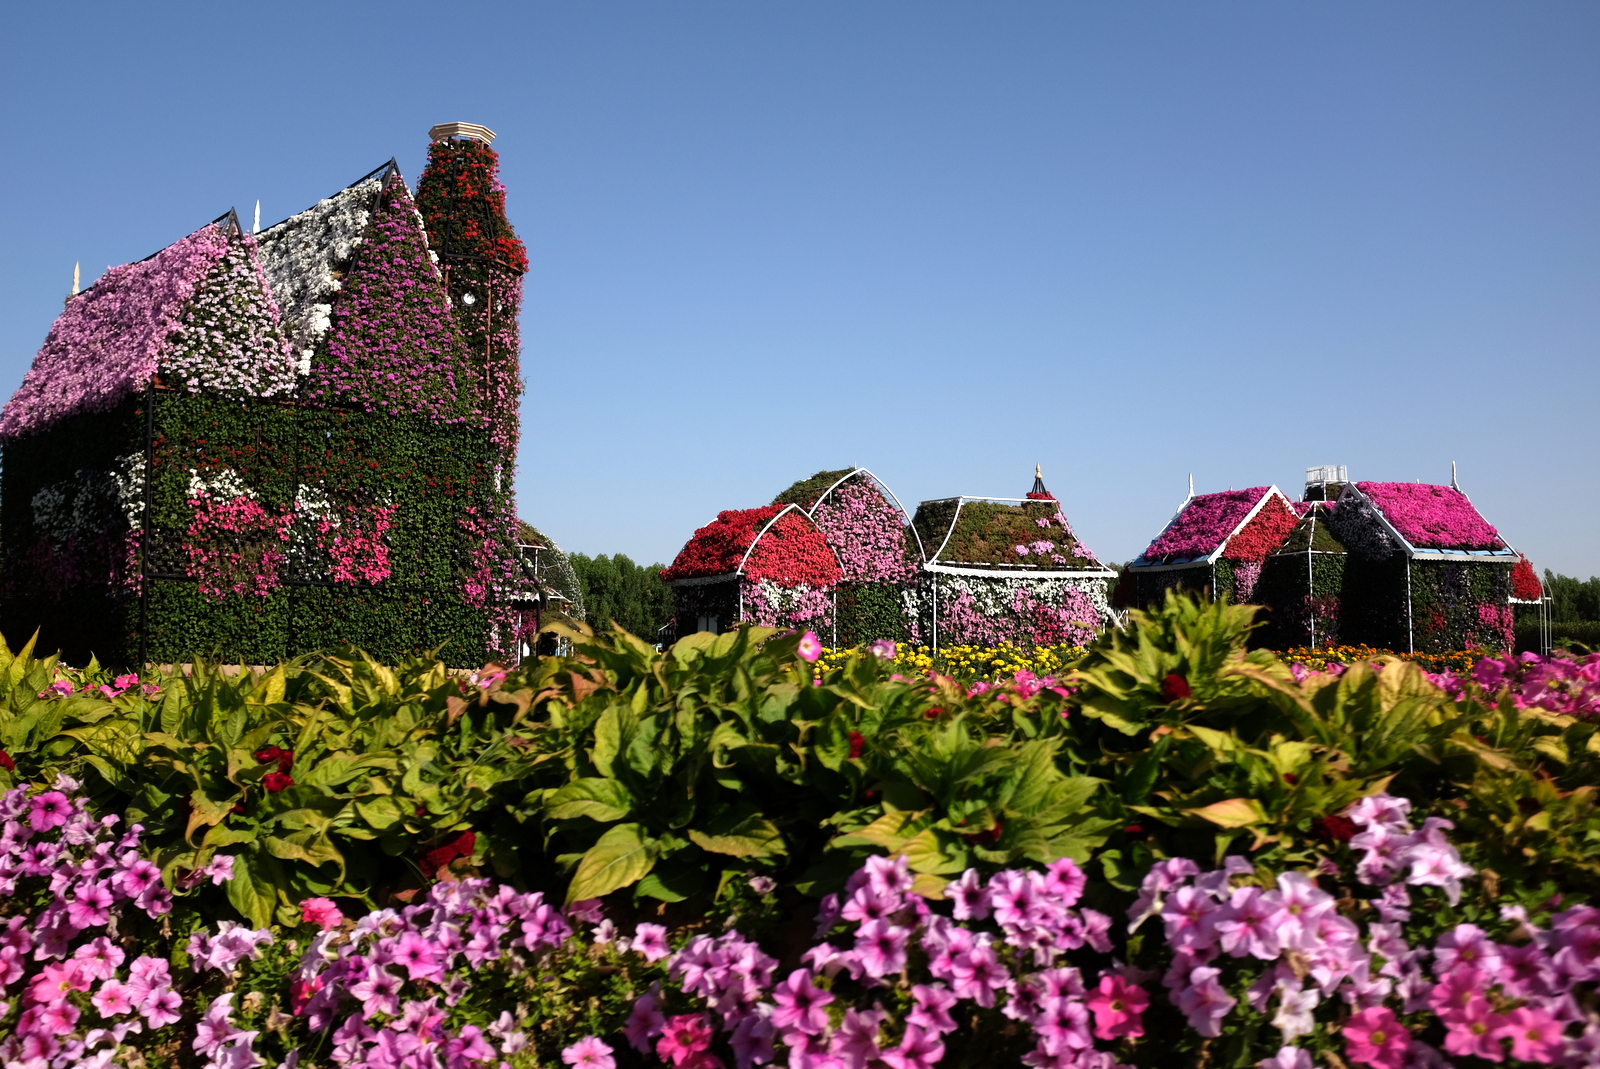 Dubai Miracle Garden - Flowers and houses